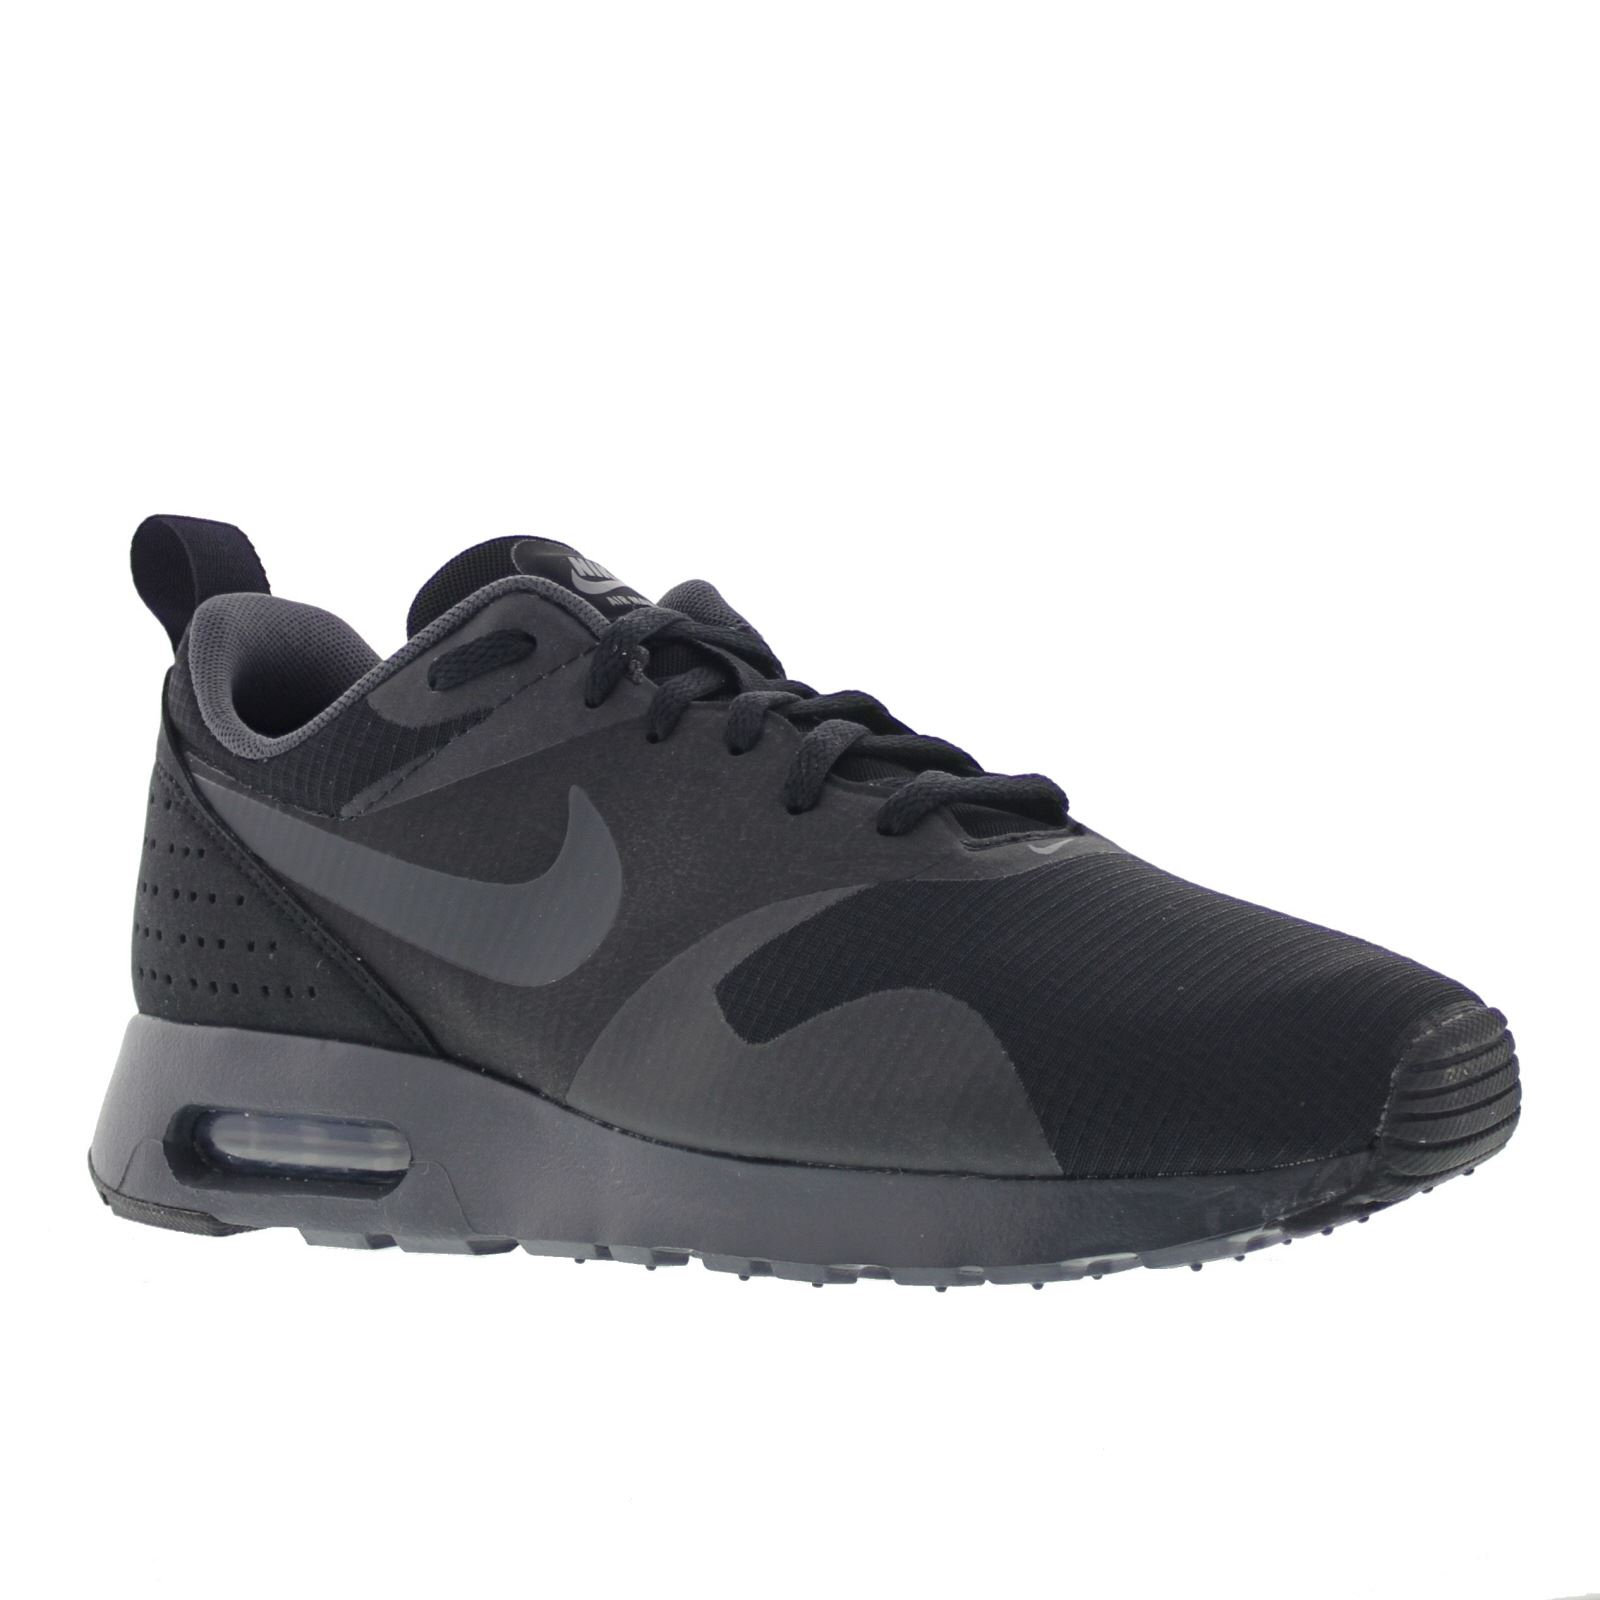 rgohq Nike Air Max Tavas Black Mens Trainers | eBay